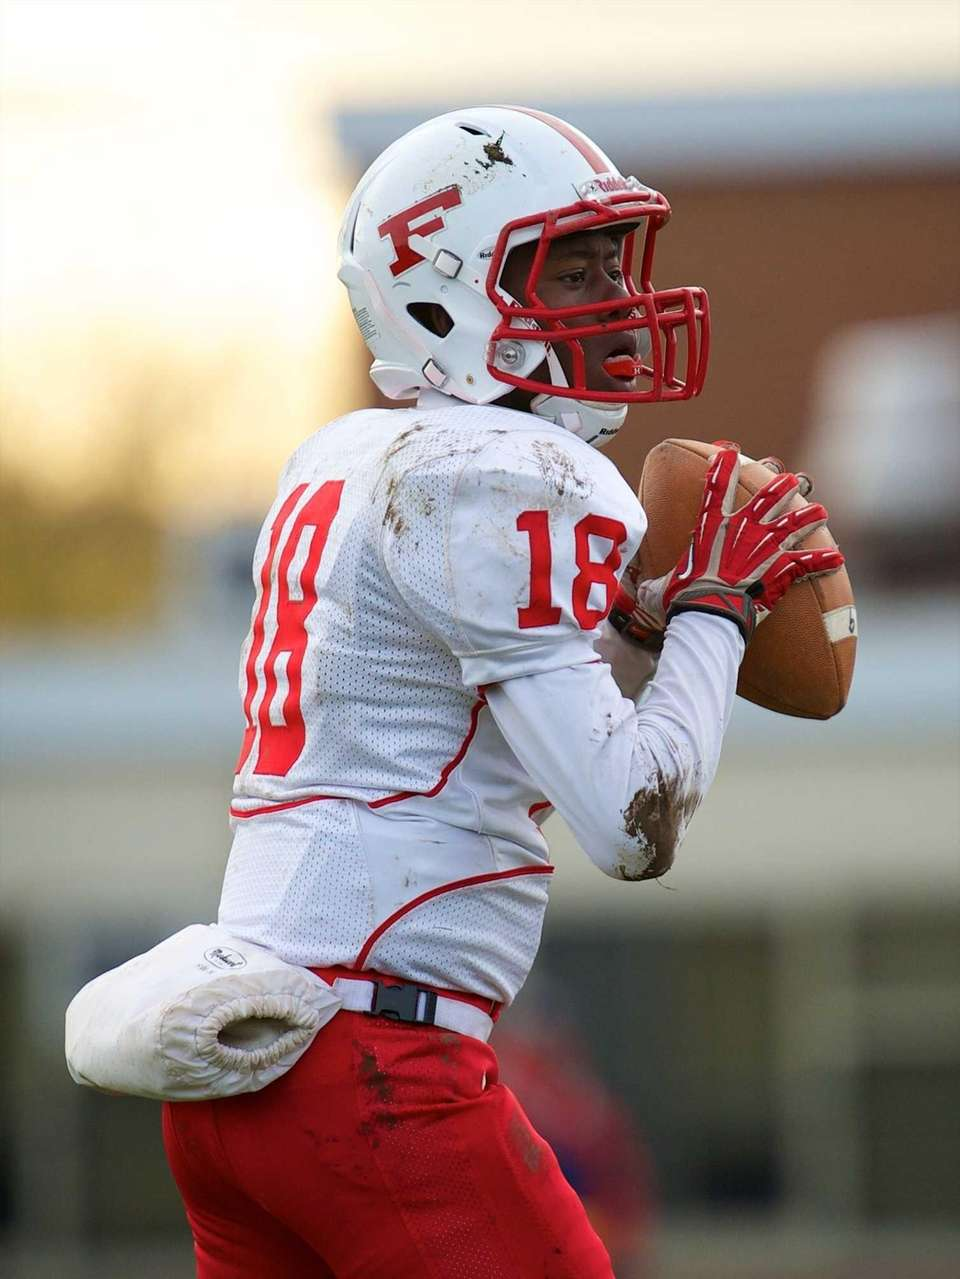 Freeport quarterback Rasheed Tucker looks to pass during